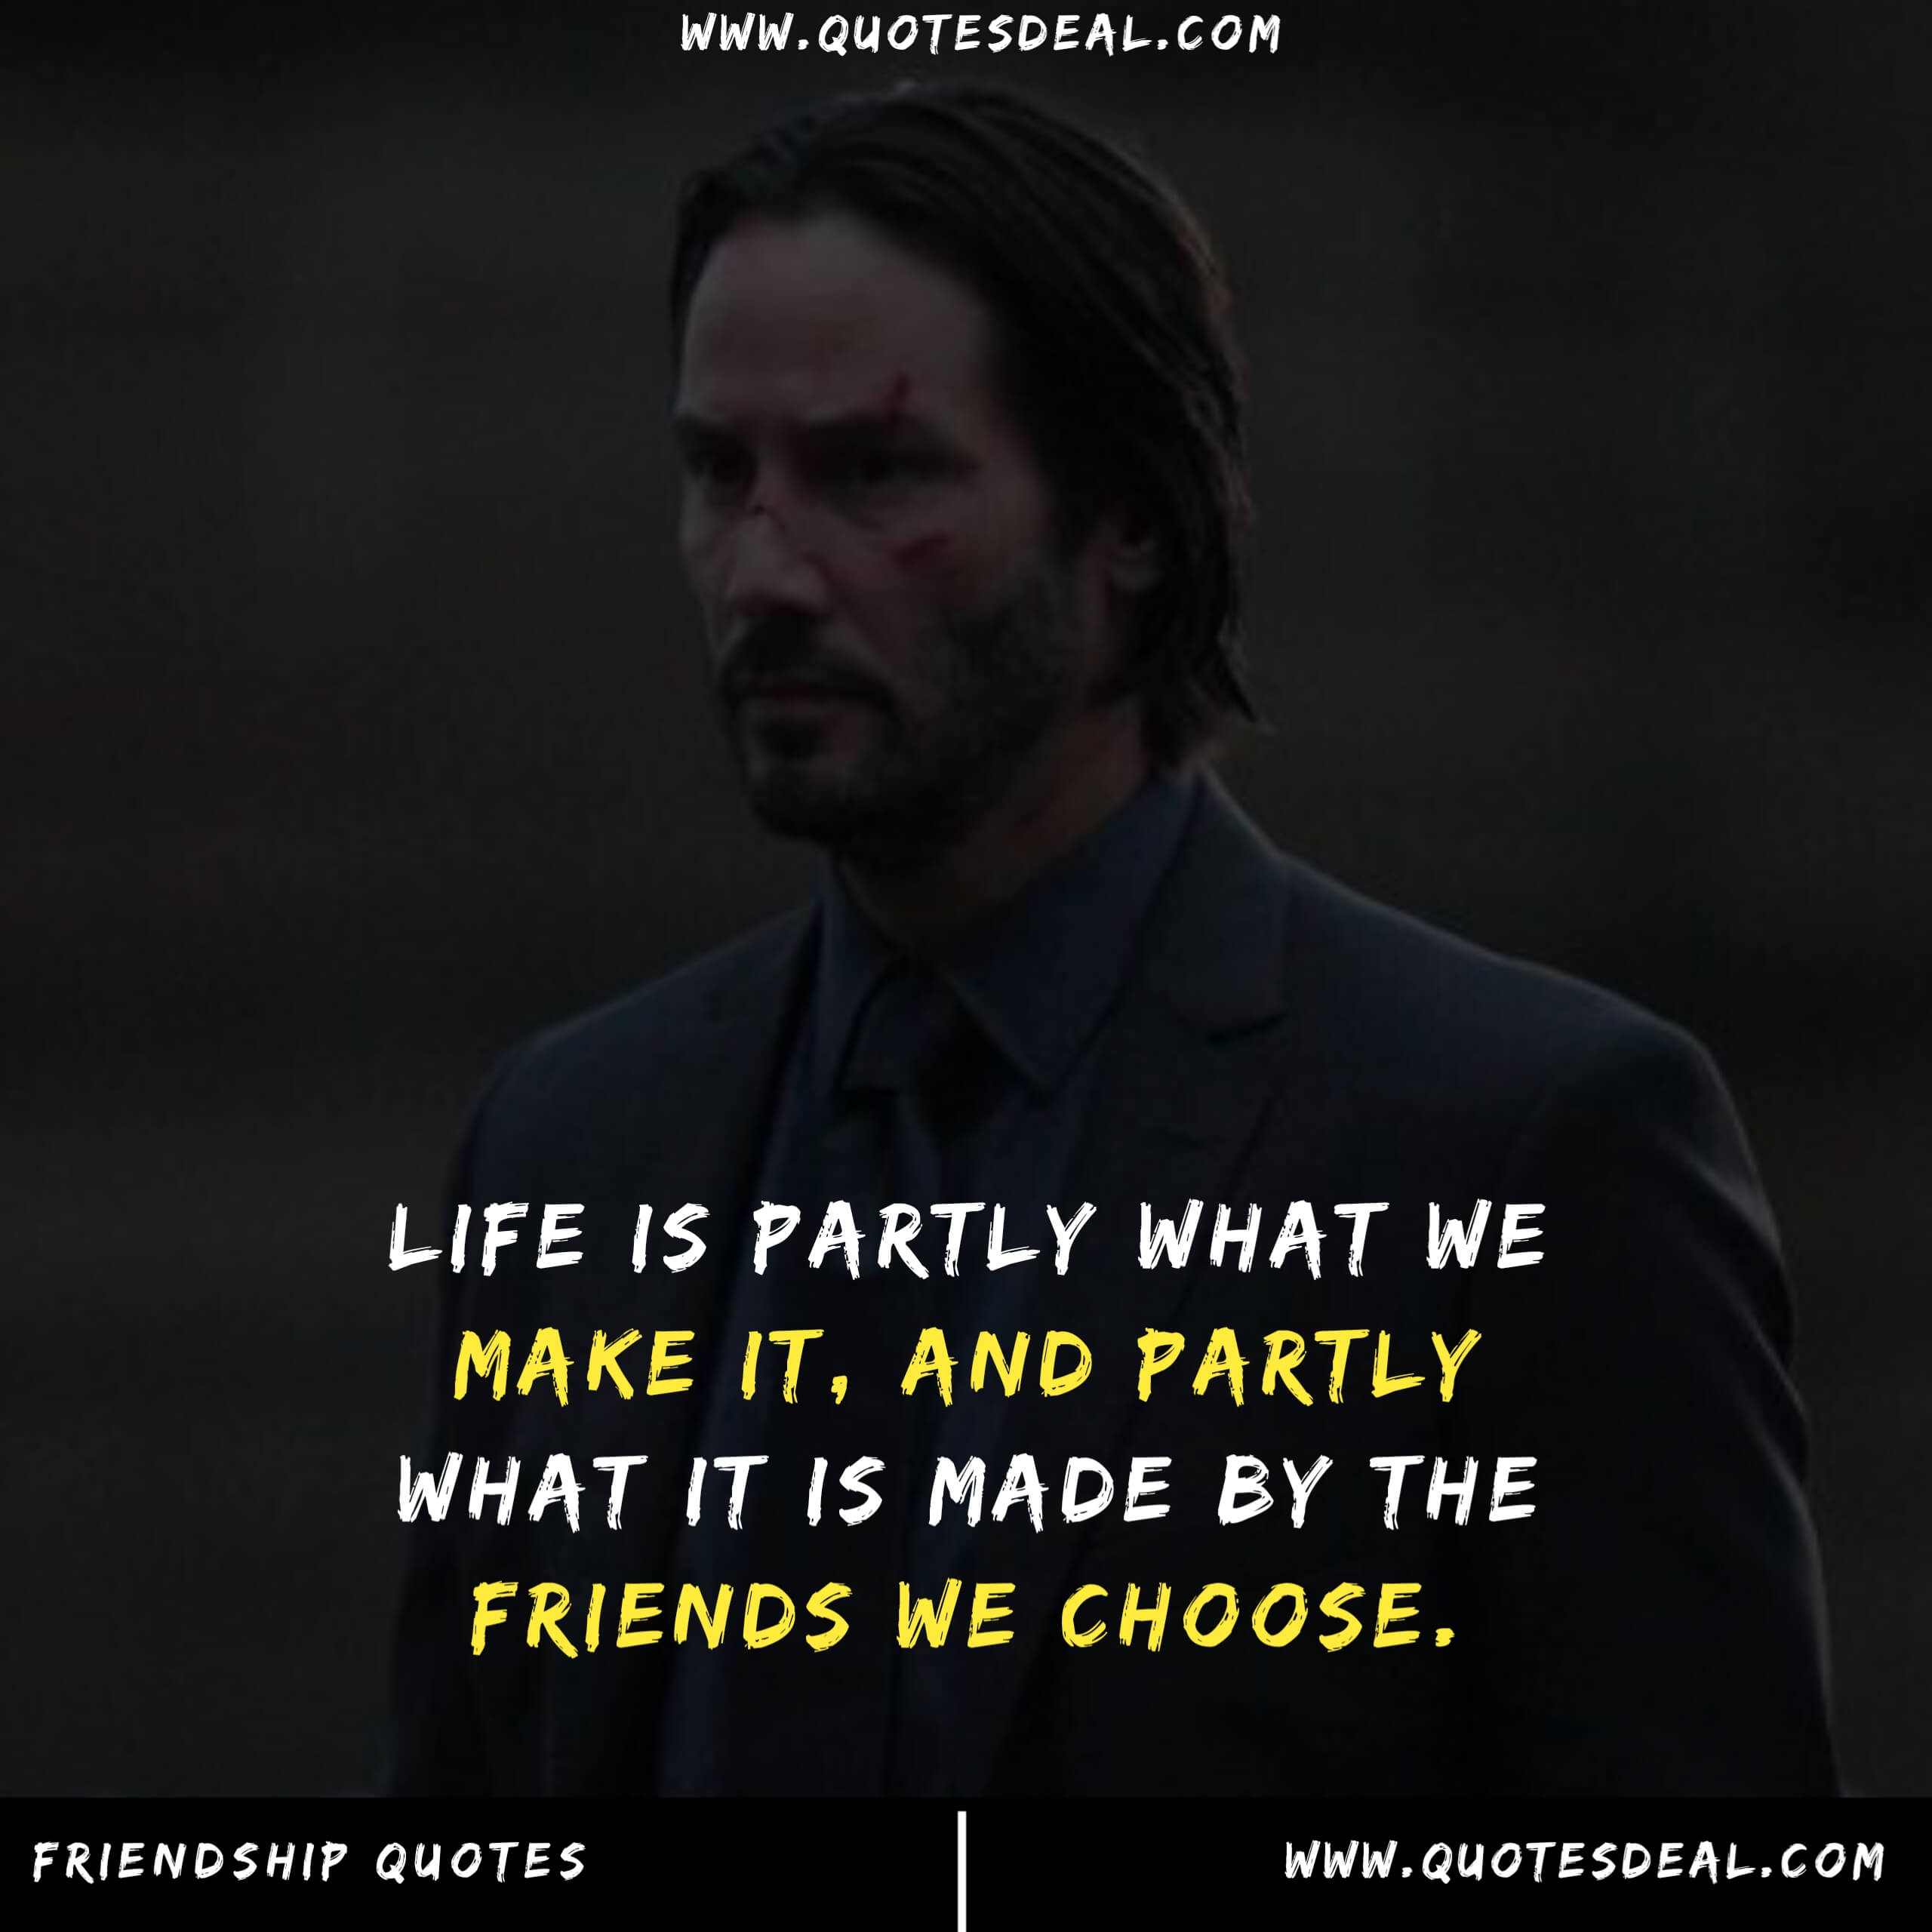 Life is partly